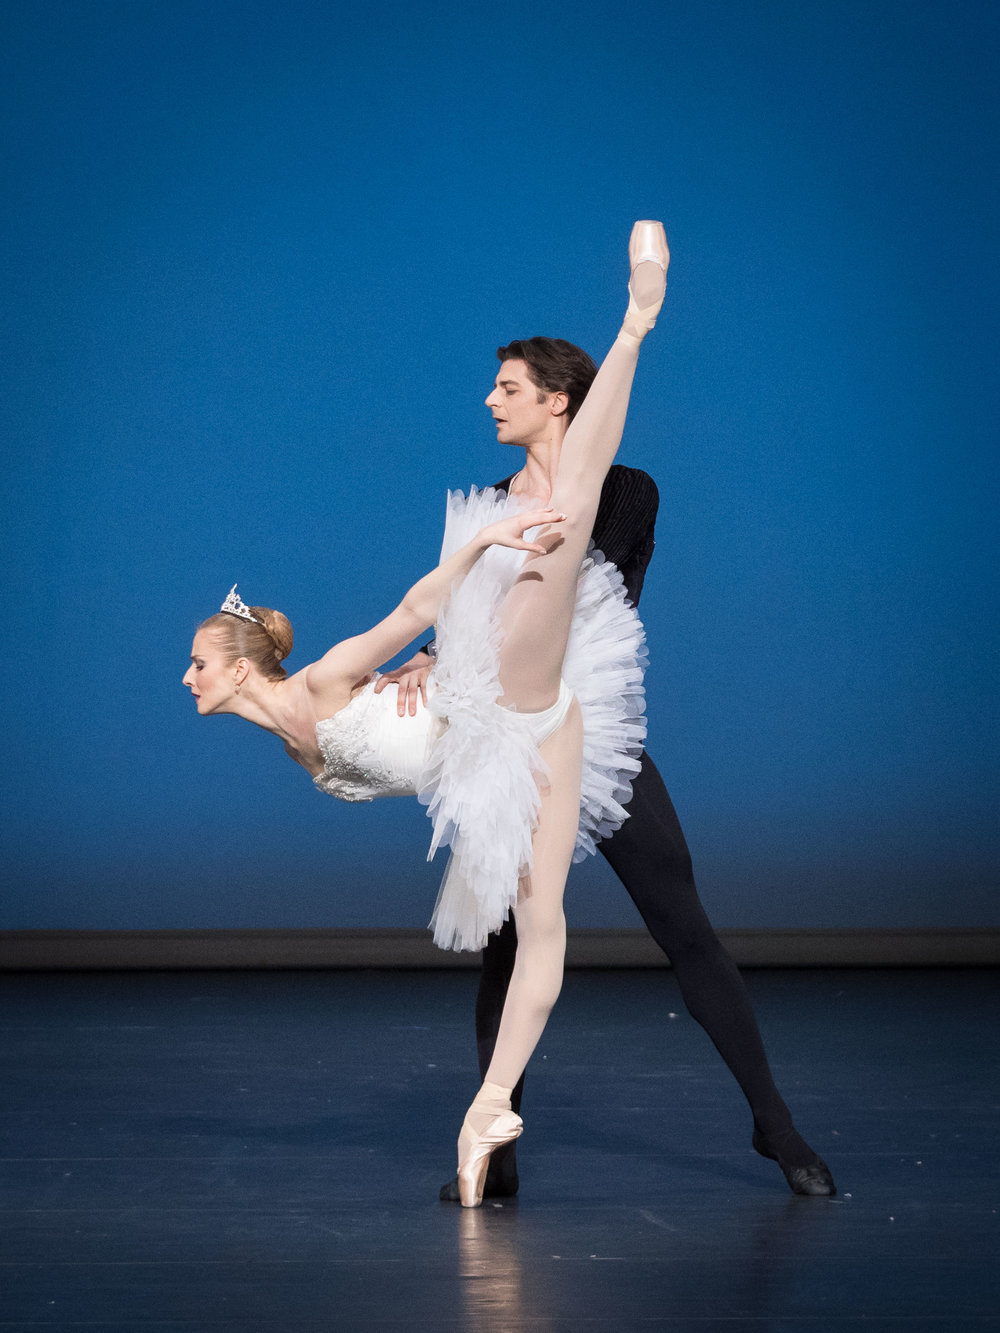 """Symphony in C"" (Balanchine) with Vladimir Shishov. Copyright: Ashley Taylor / Vienna State Ballet."